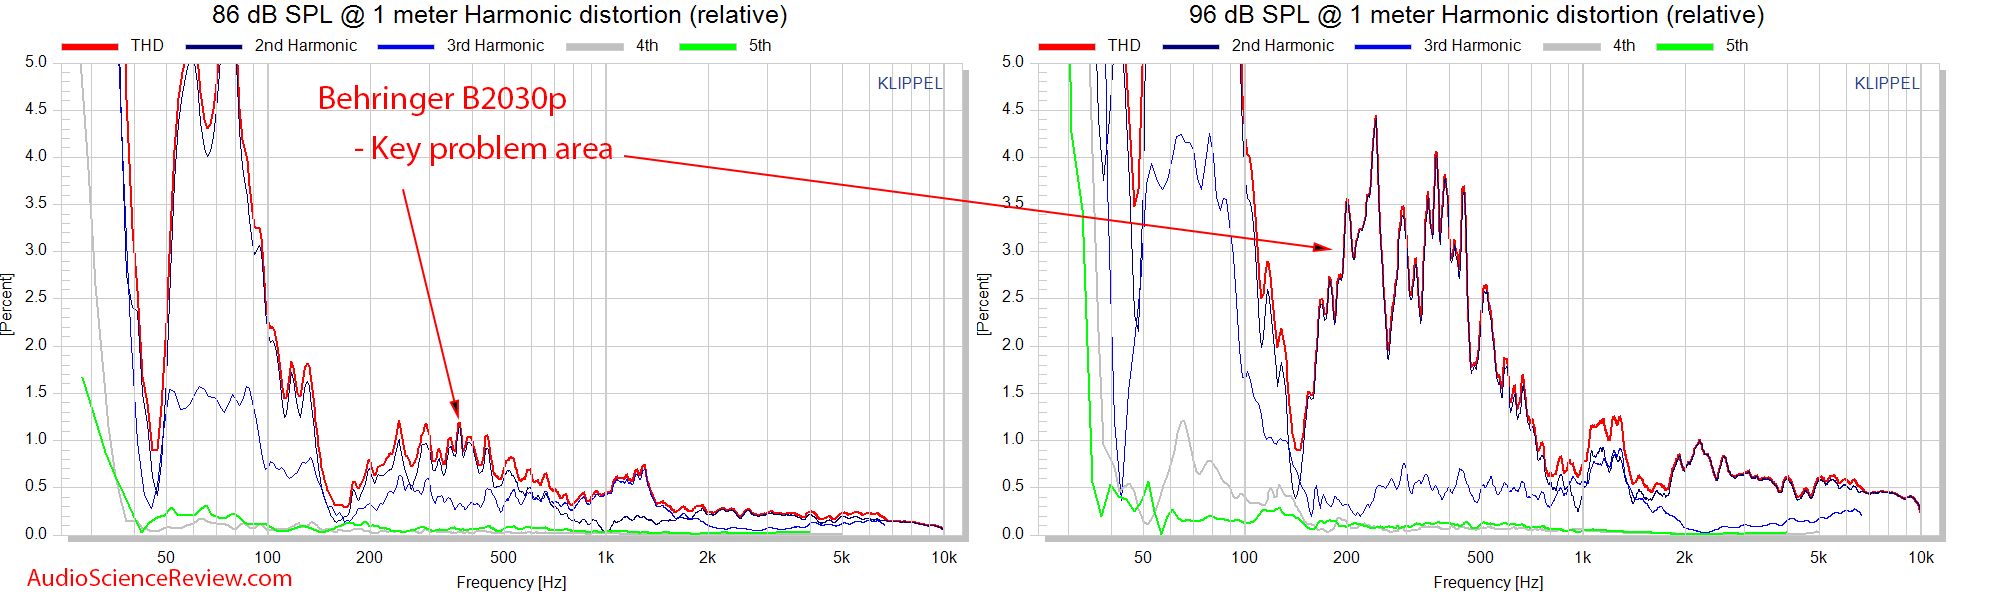 Behringer B2030p Speaker Pro Monitor Relative THD measurements.png